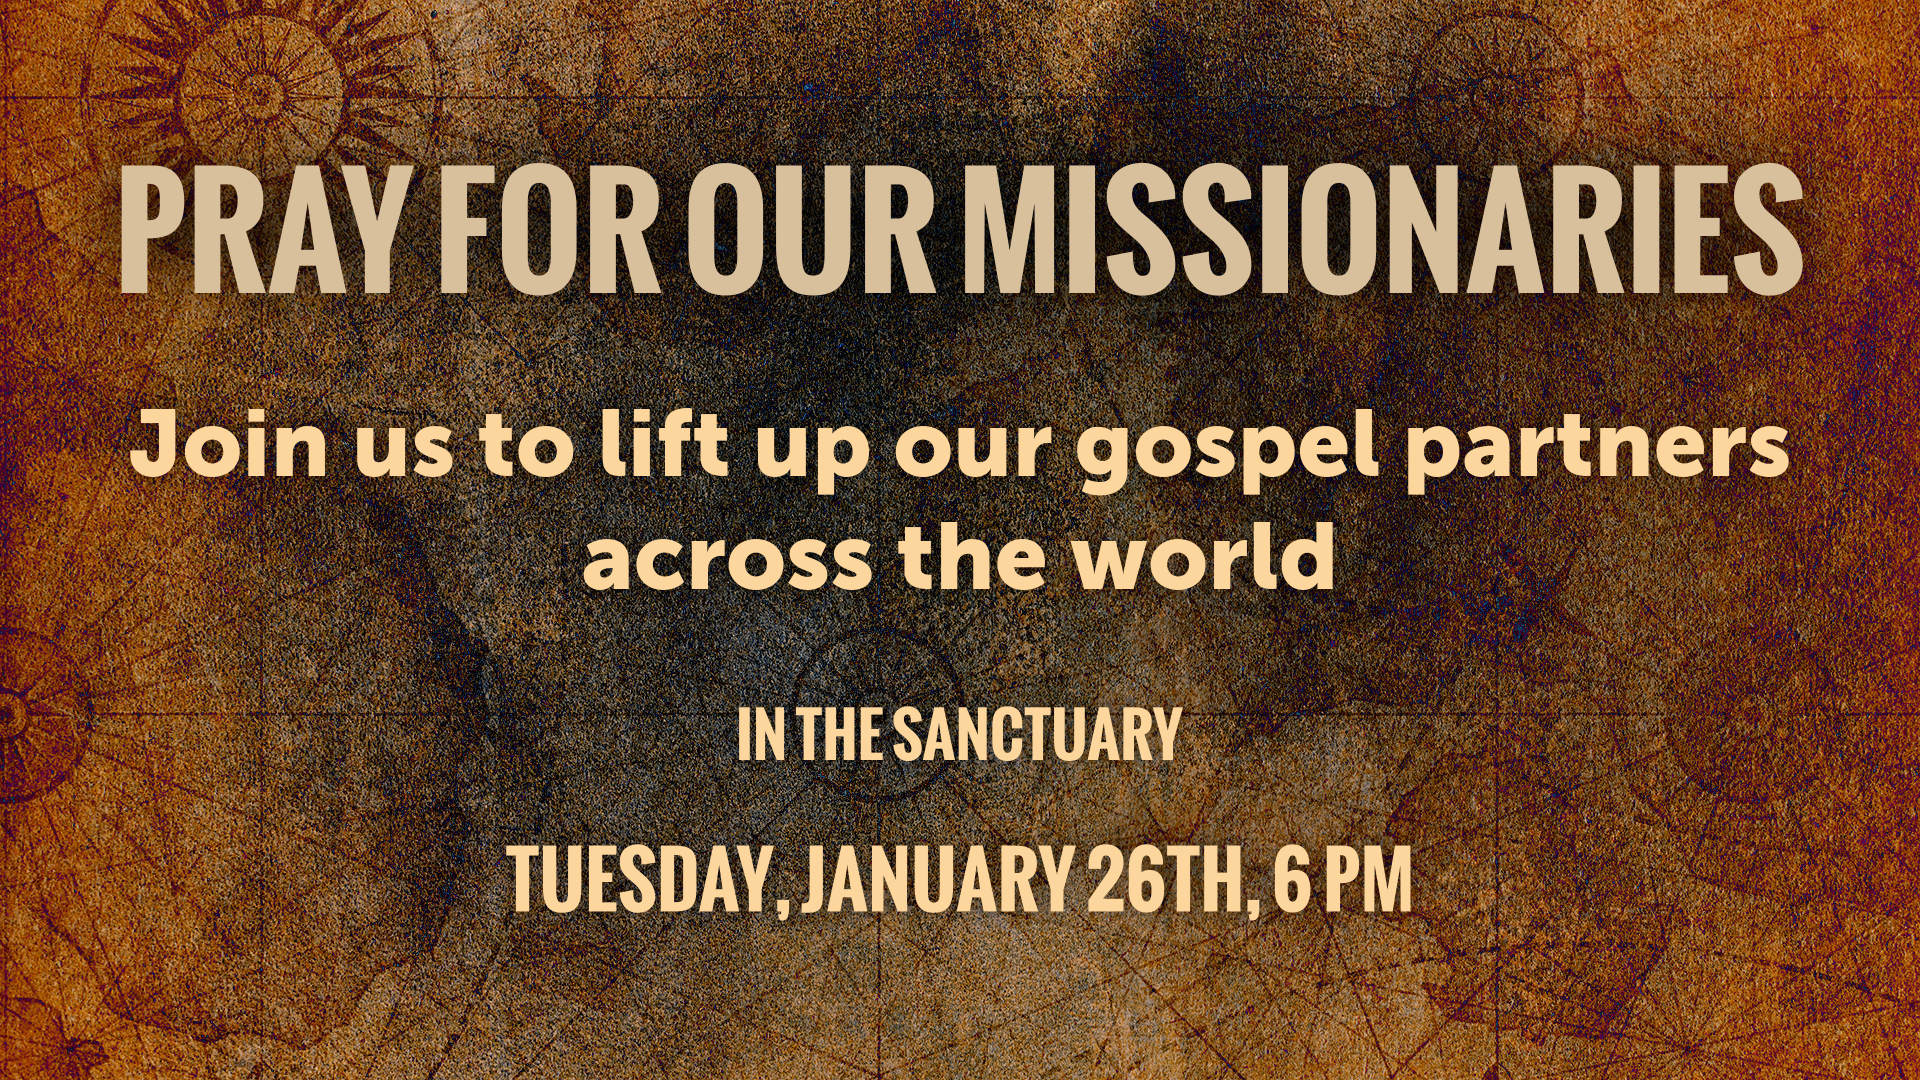 Pray for Our Missionaries